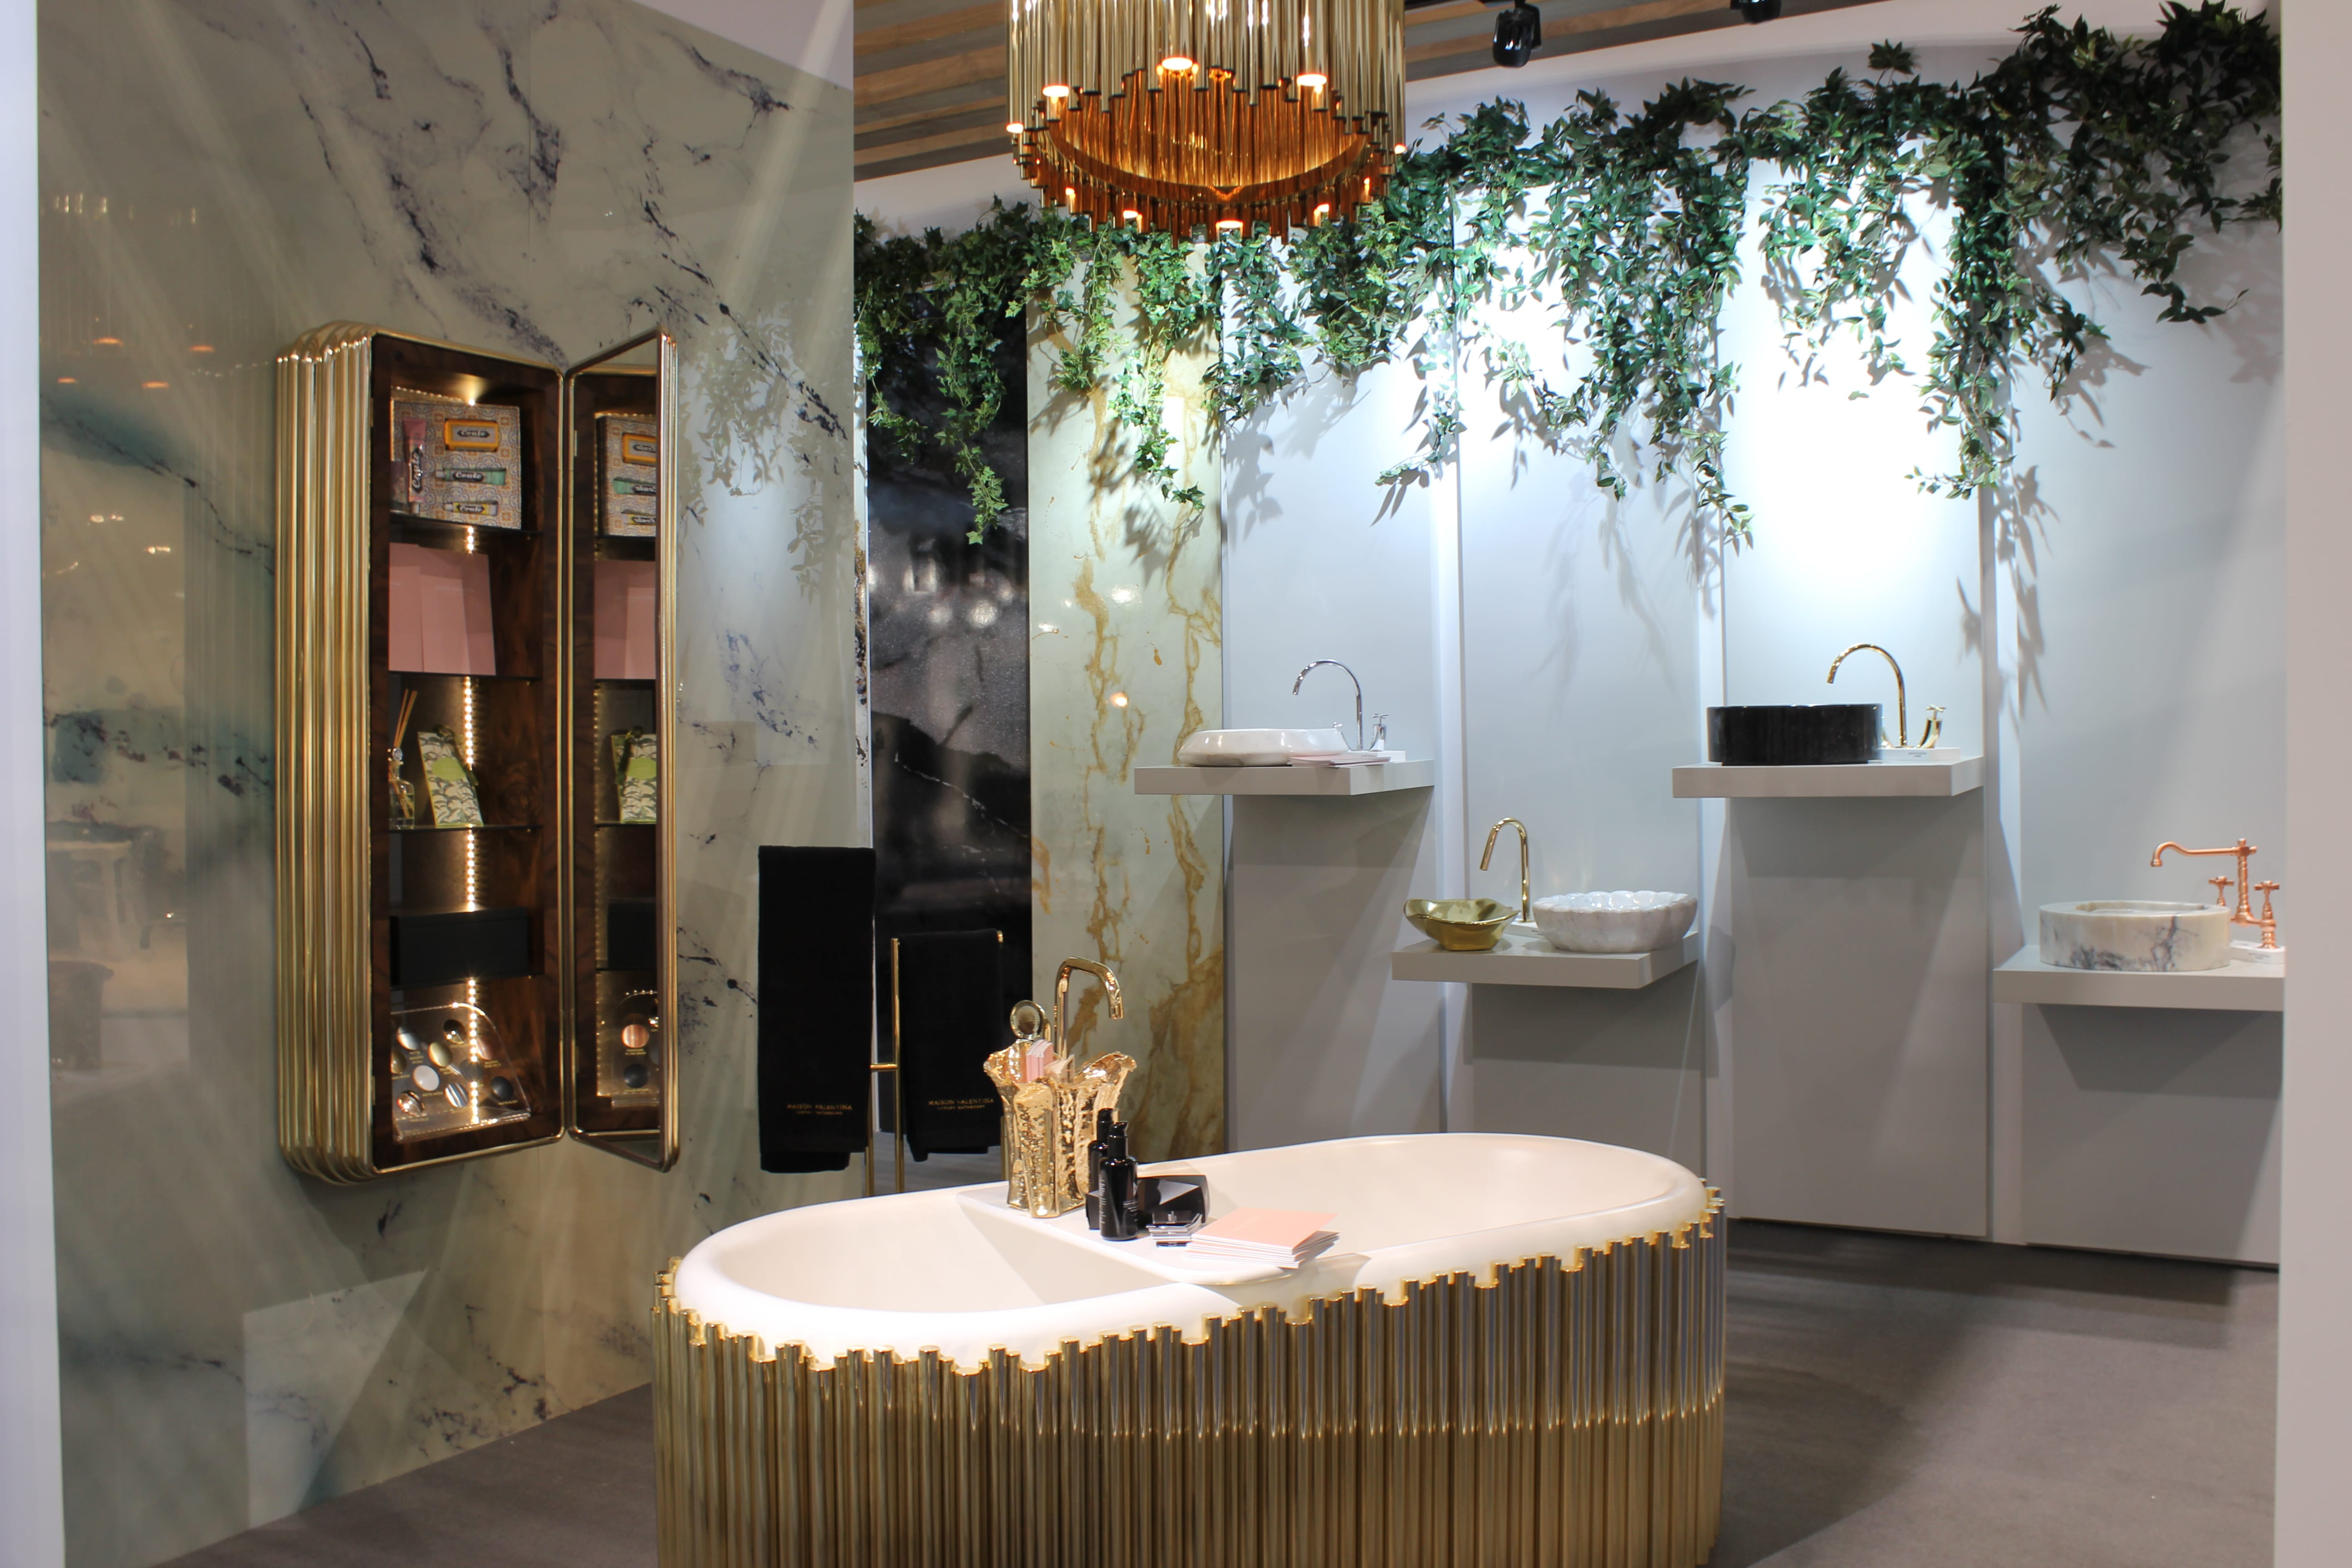 cersaie 2019 Top 5 Bathroom Brands to Look for at CERSAIE News CERSAIE min